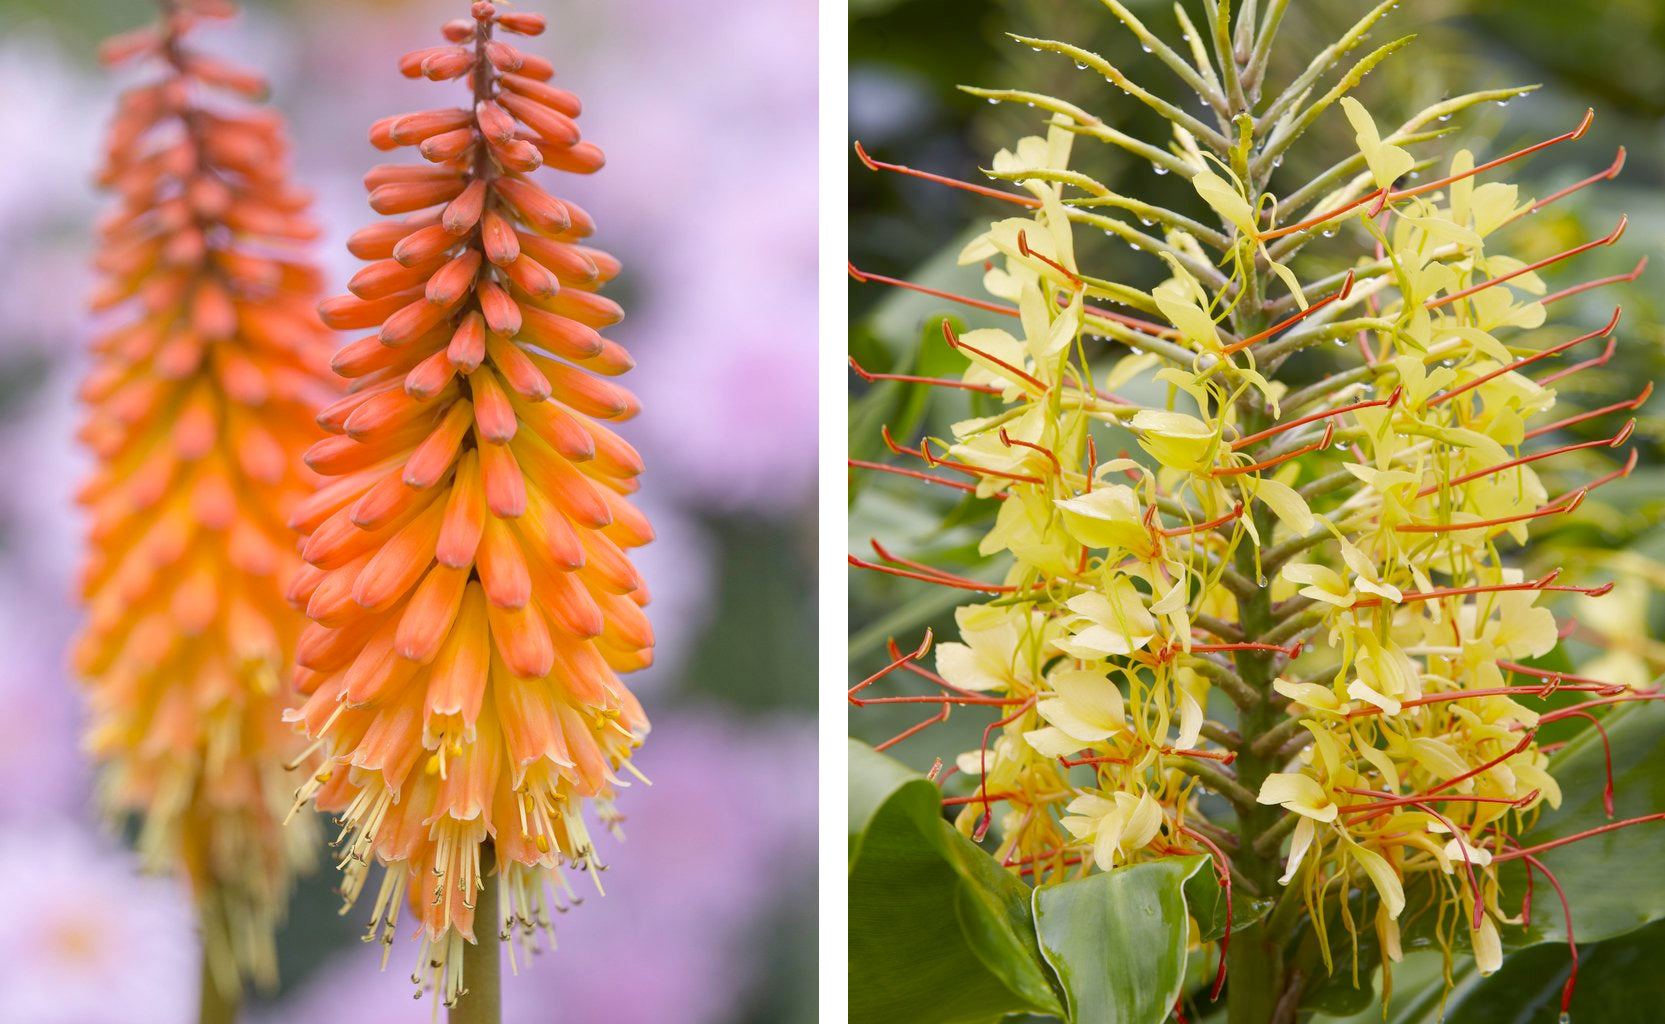 Hedychium and Red Hot Poker